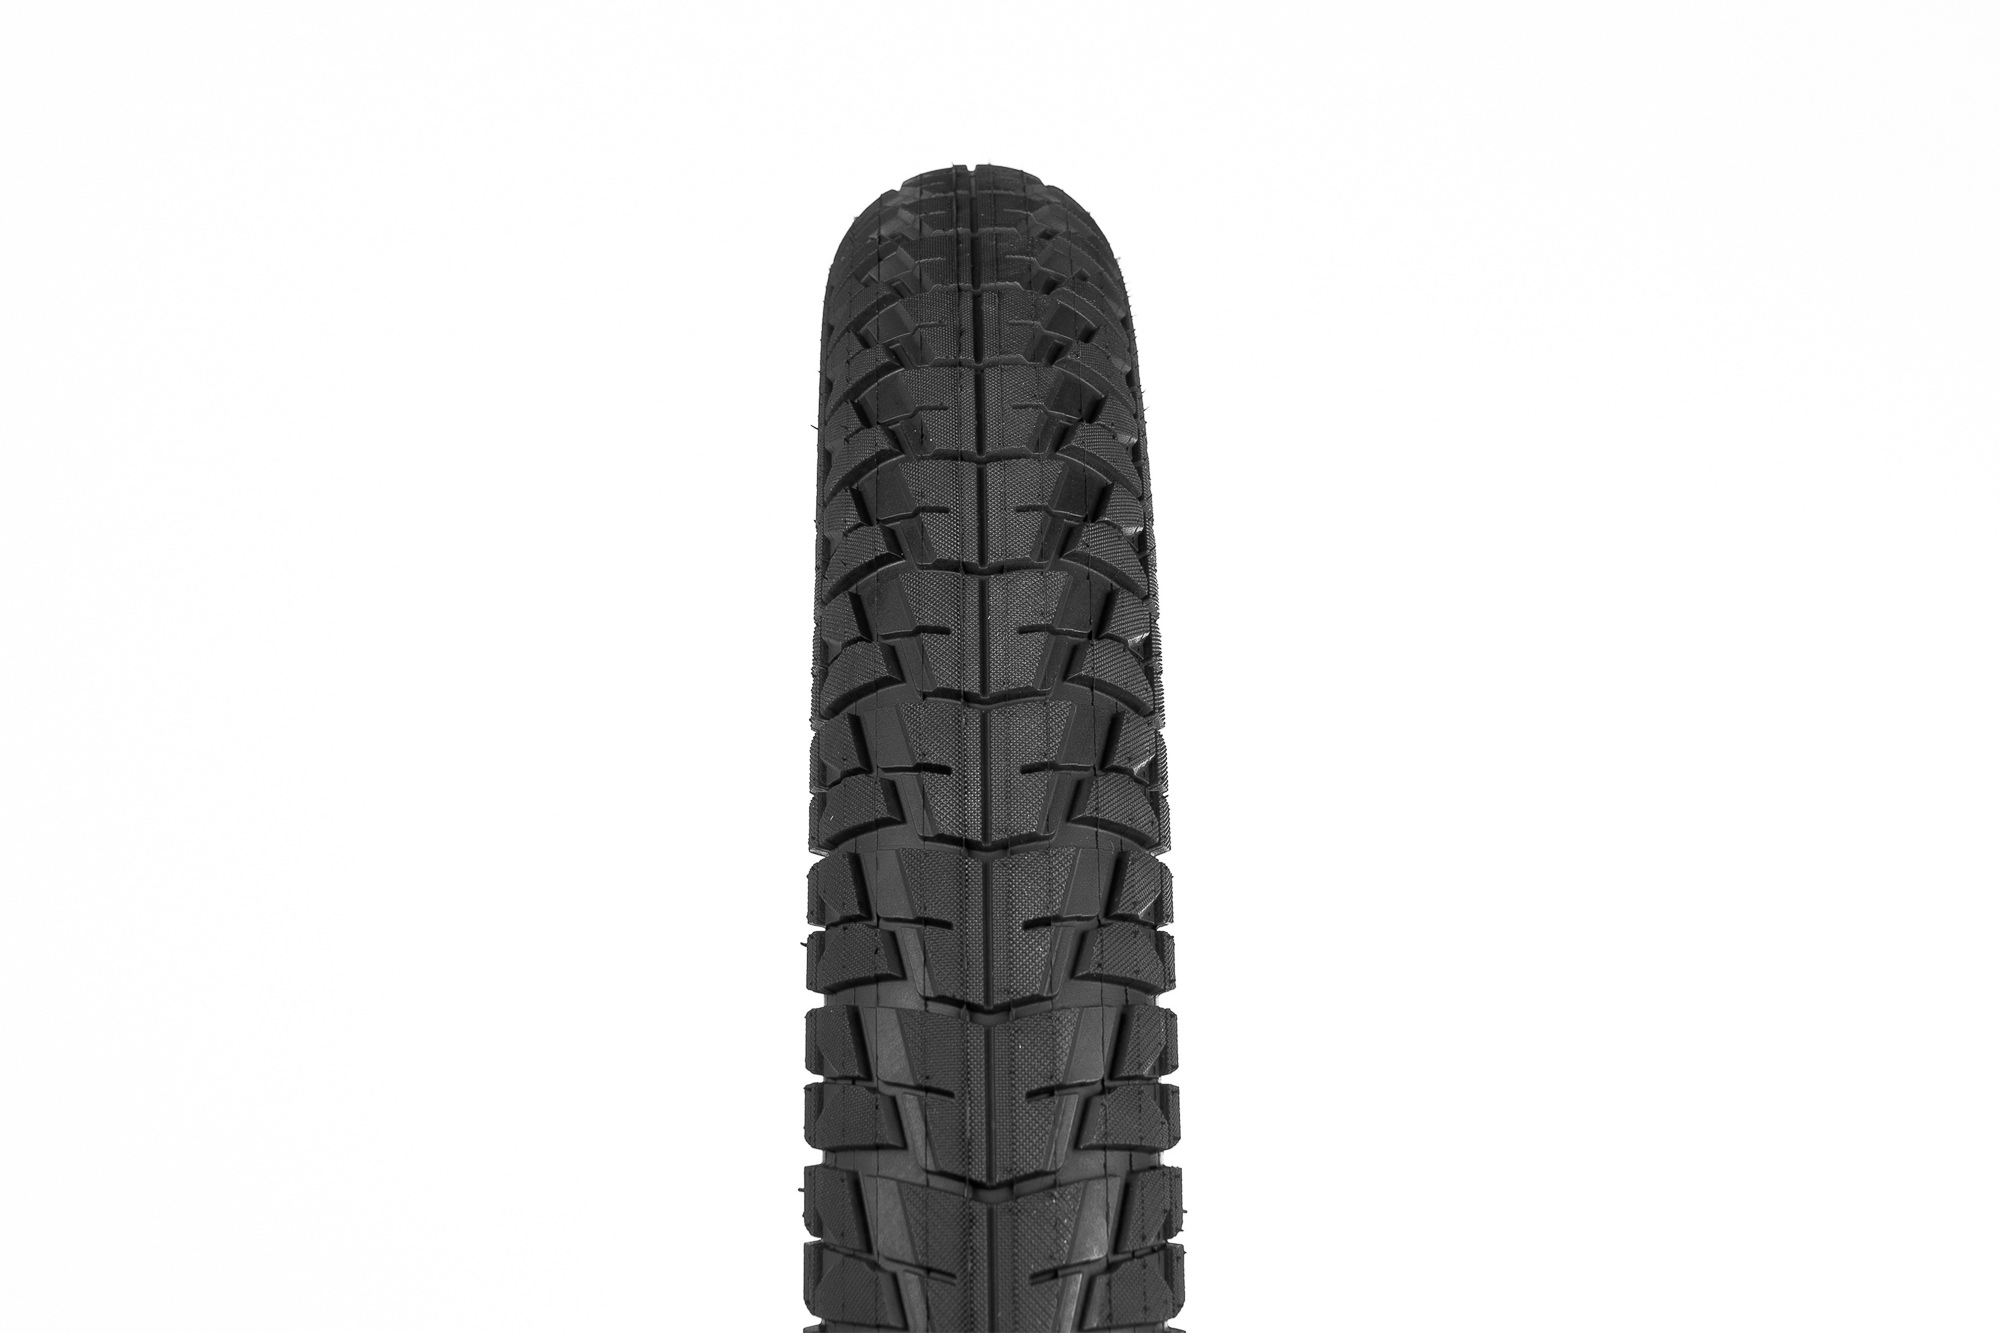 SaltPlus_Pitch_Raw_tire_black_02